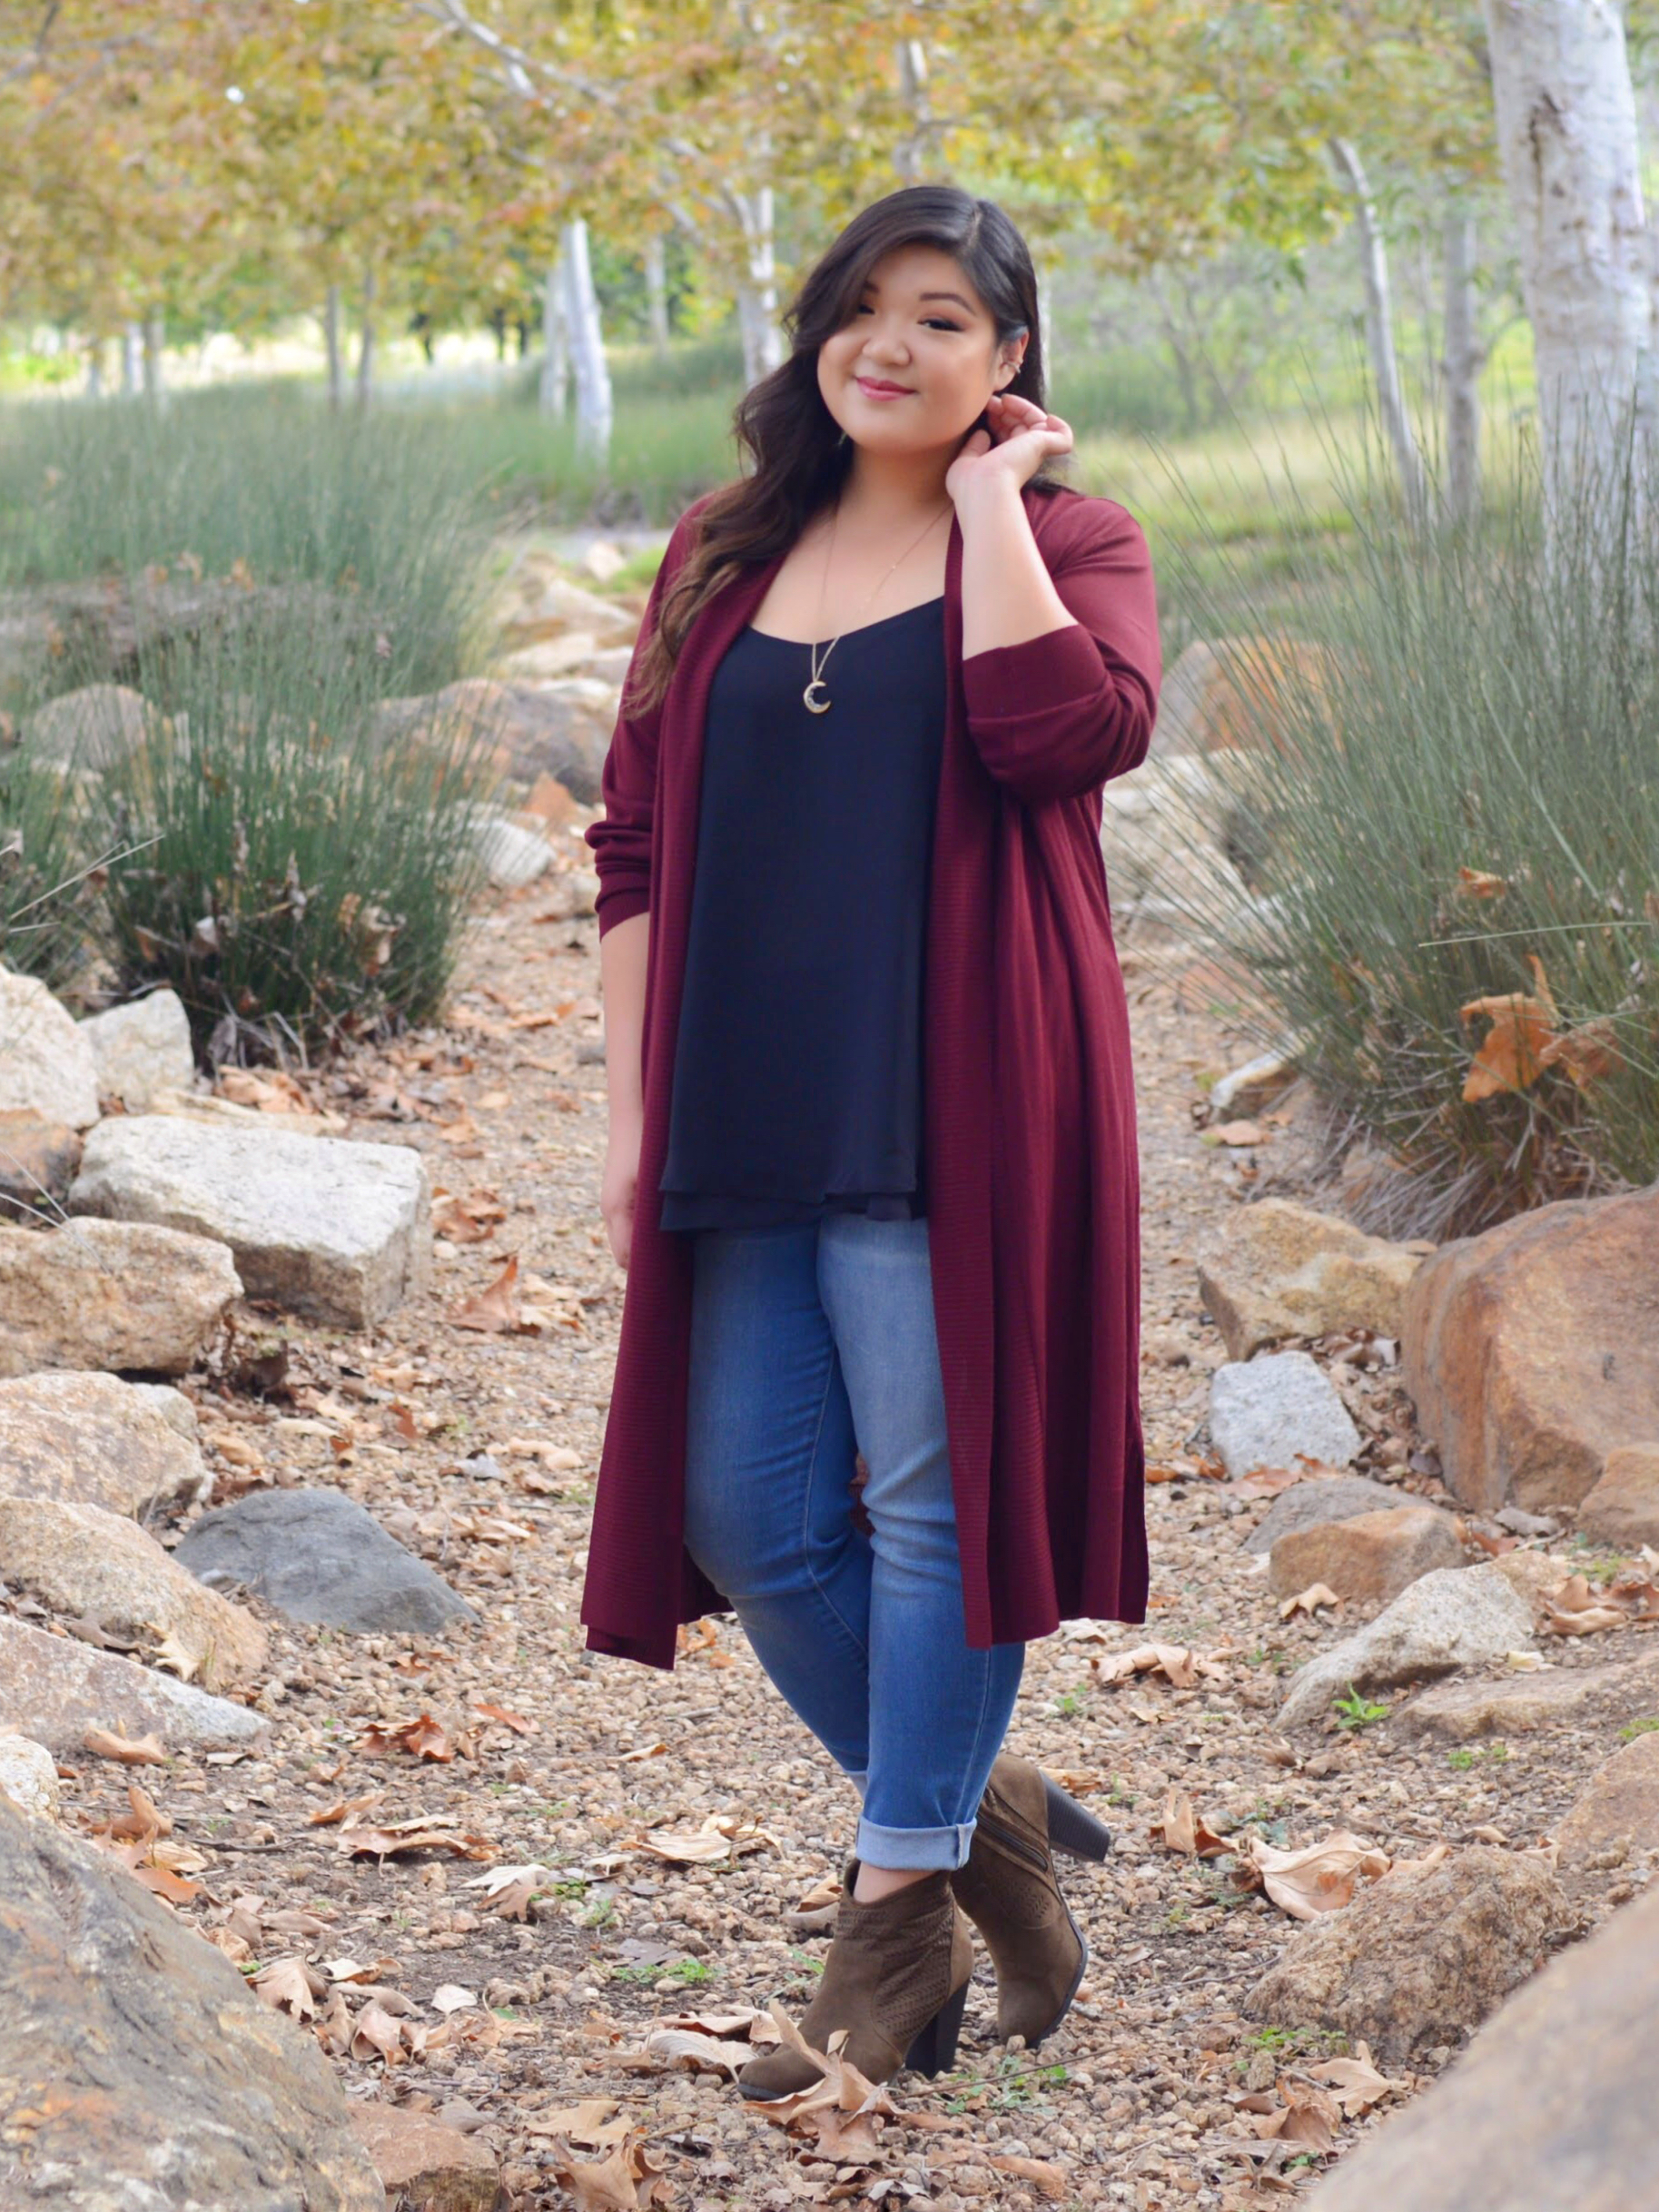 7c381b50d5b PLUS SIZE FALL LOOKBOOK WITH JCPENNEY - Curvy Girl Chic